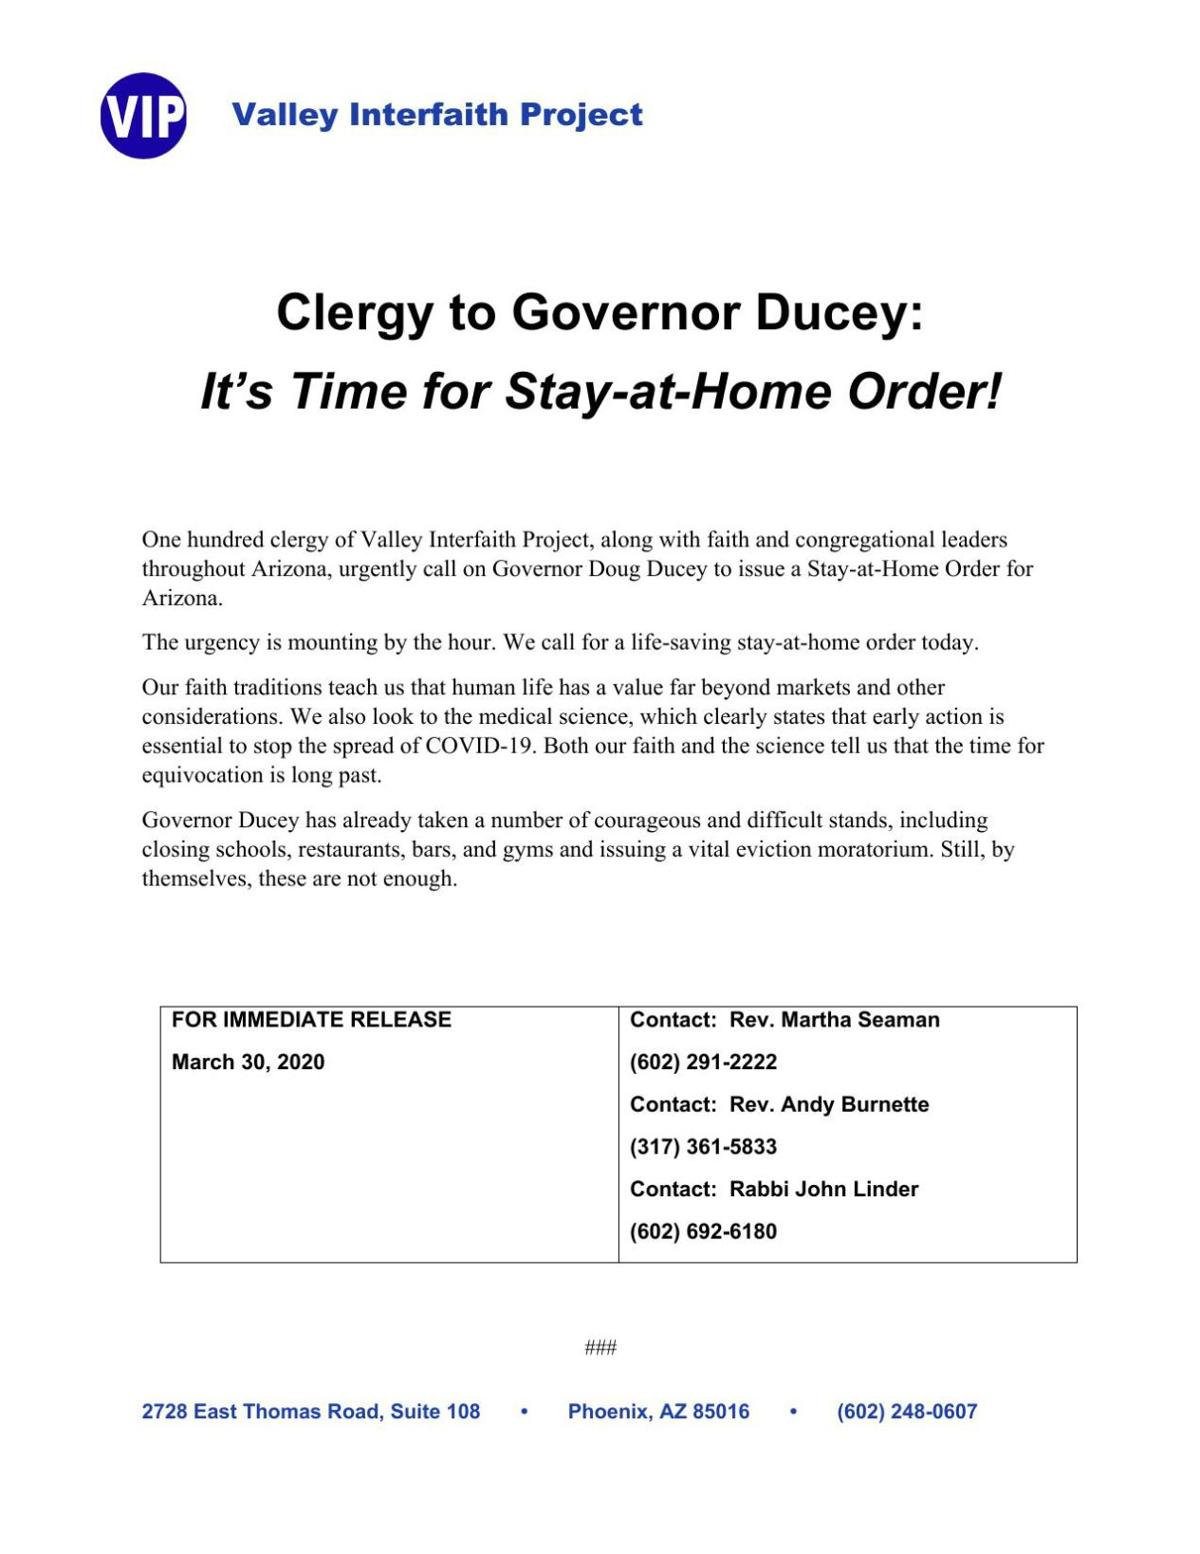 Clergy ask Governor for Stay-At-Home Order